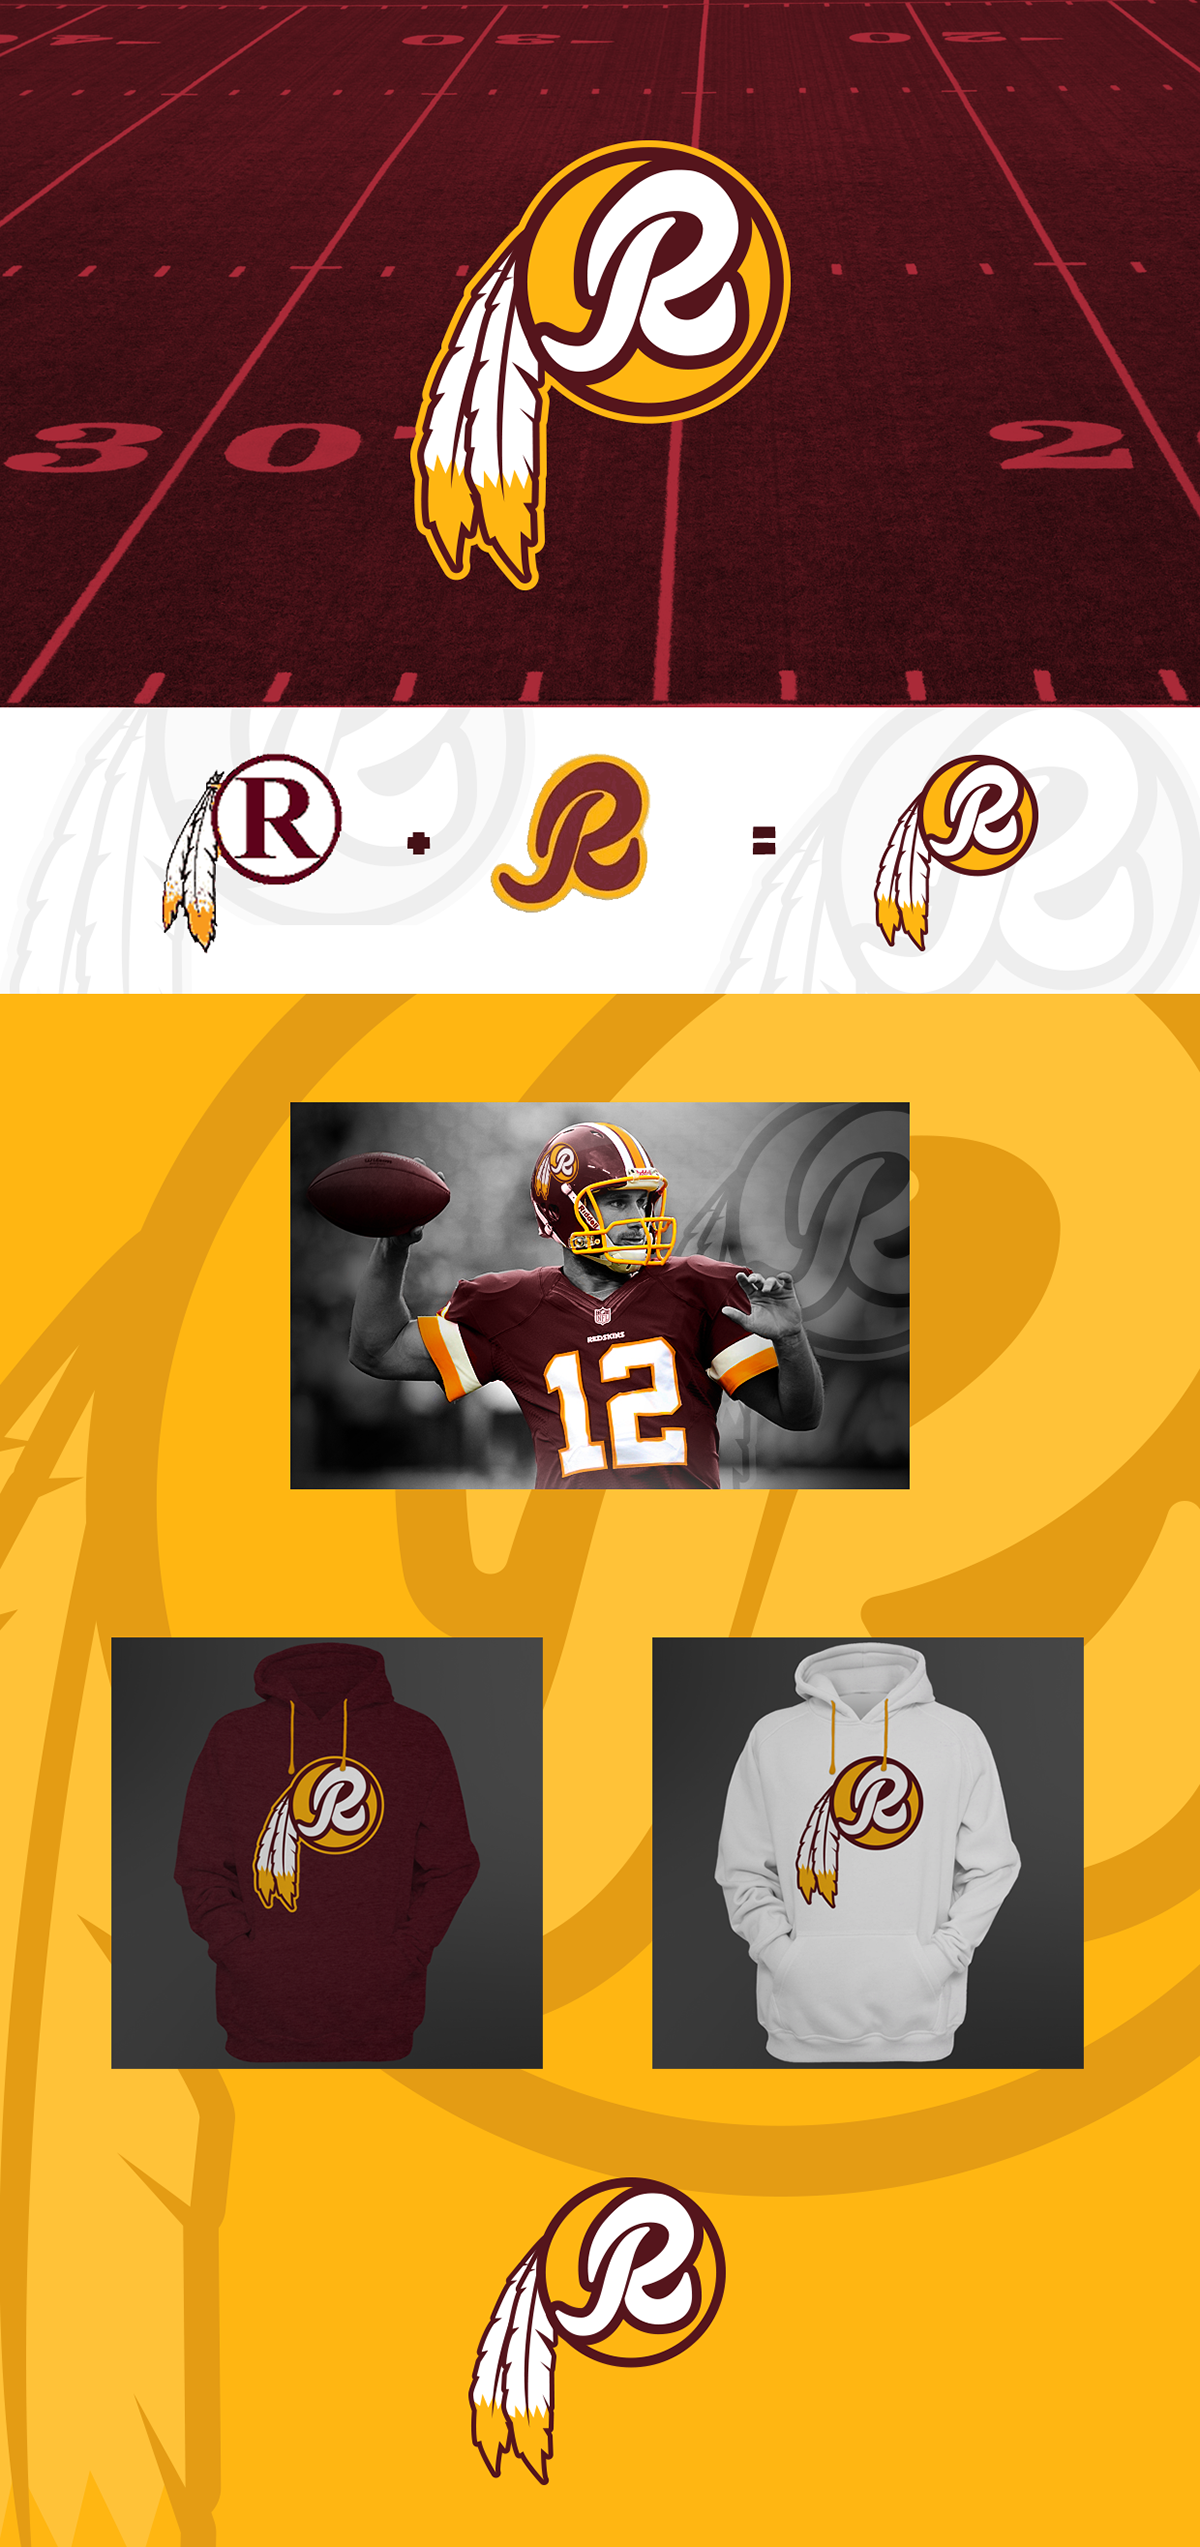 b0254b514 Washington Redskins Rebrand on Behance | Storm | Washington redskins ...